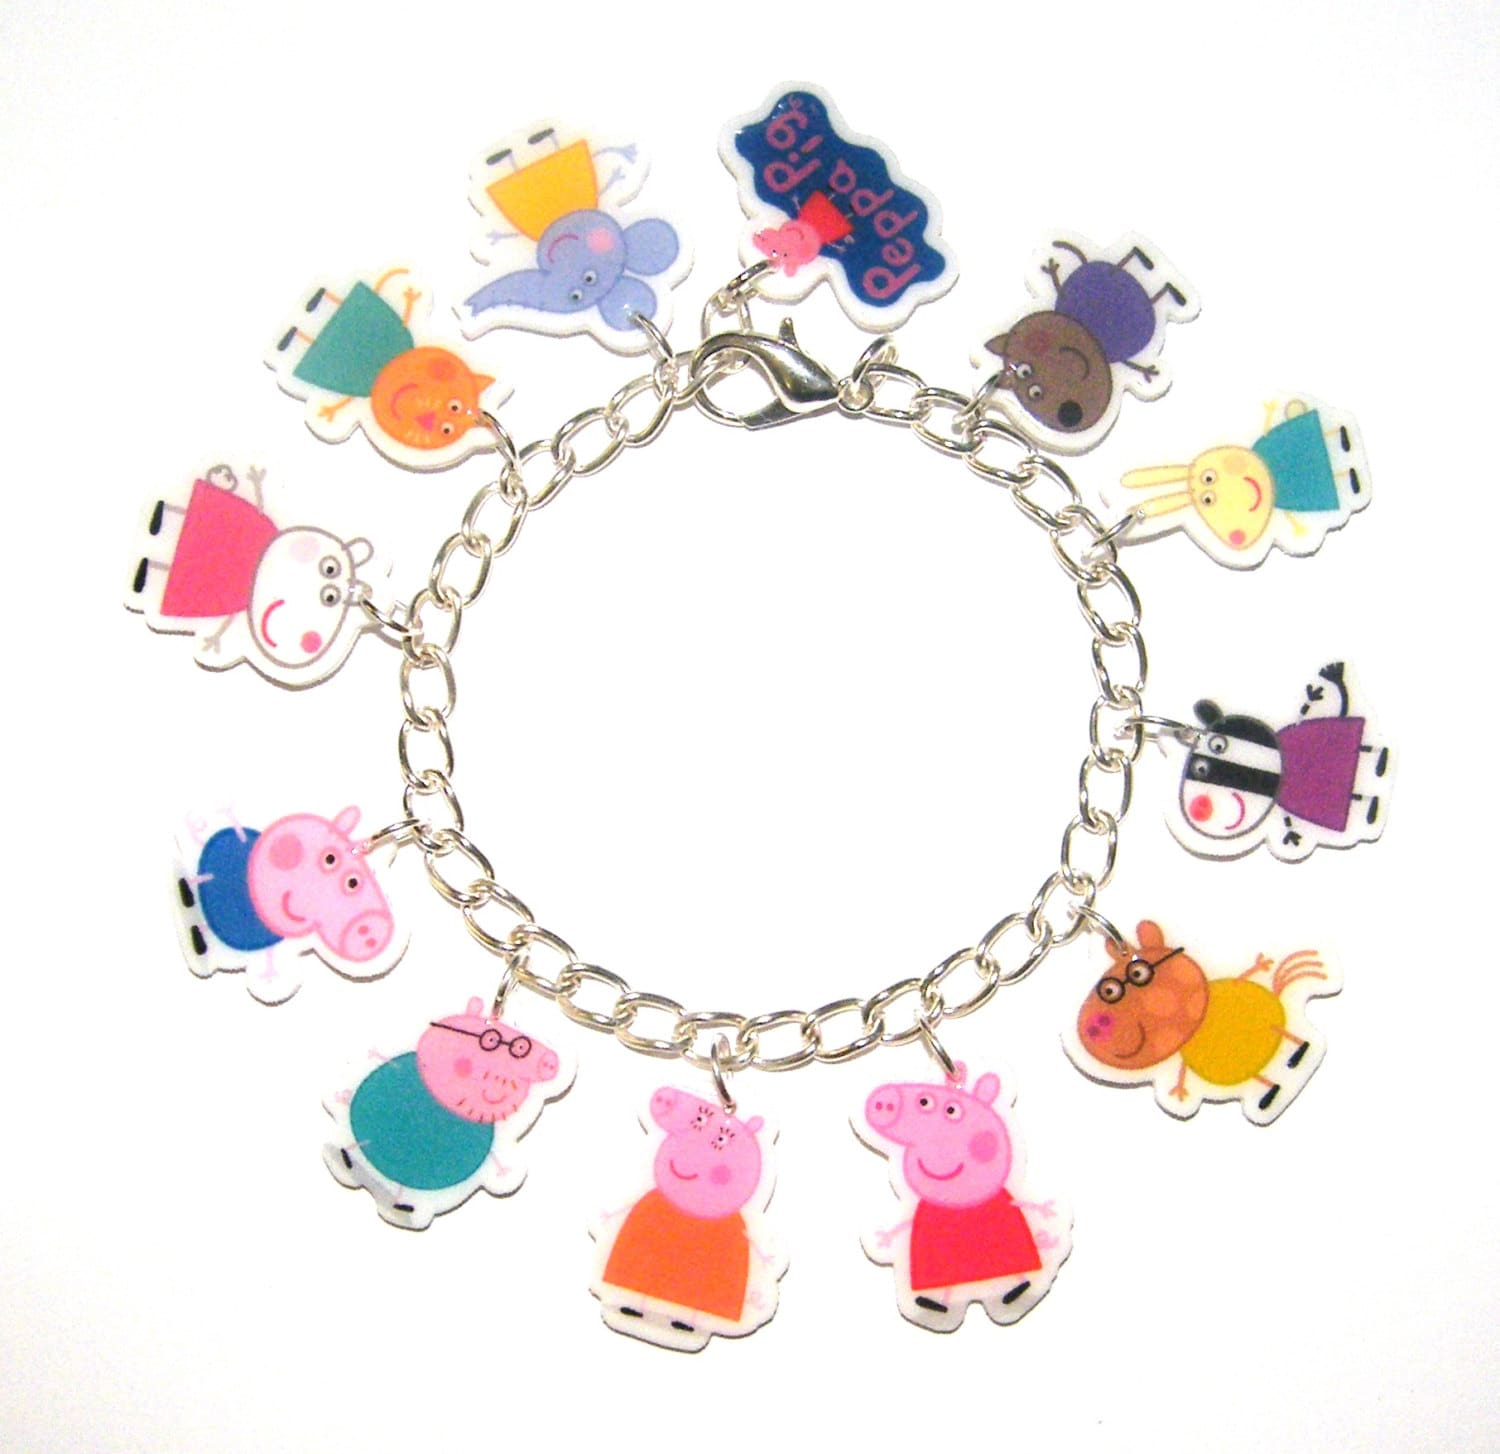 Pig Charm Bracelet: Peppa Pig Charm Bracelet. Peppa Pig Party Peppa Pig Gift